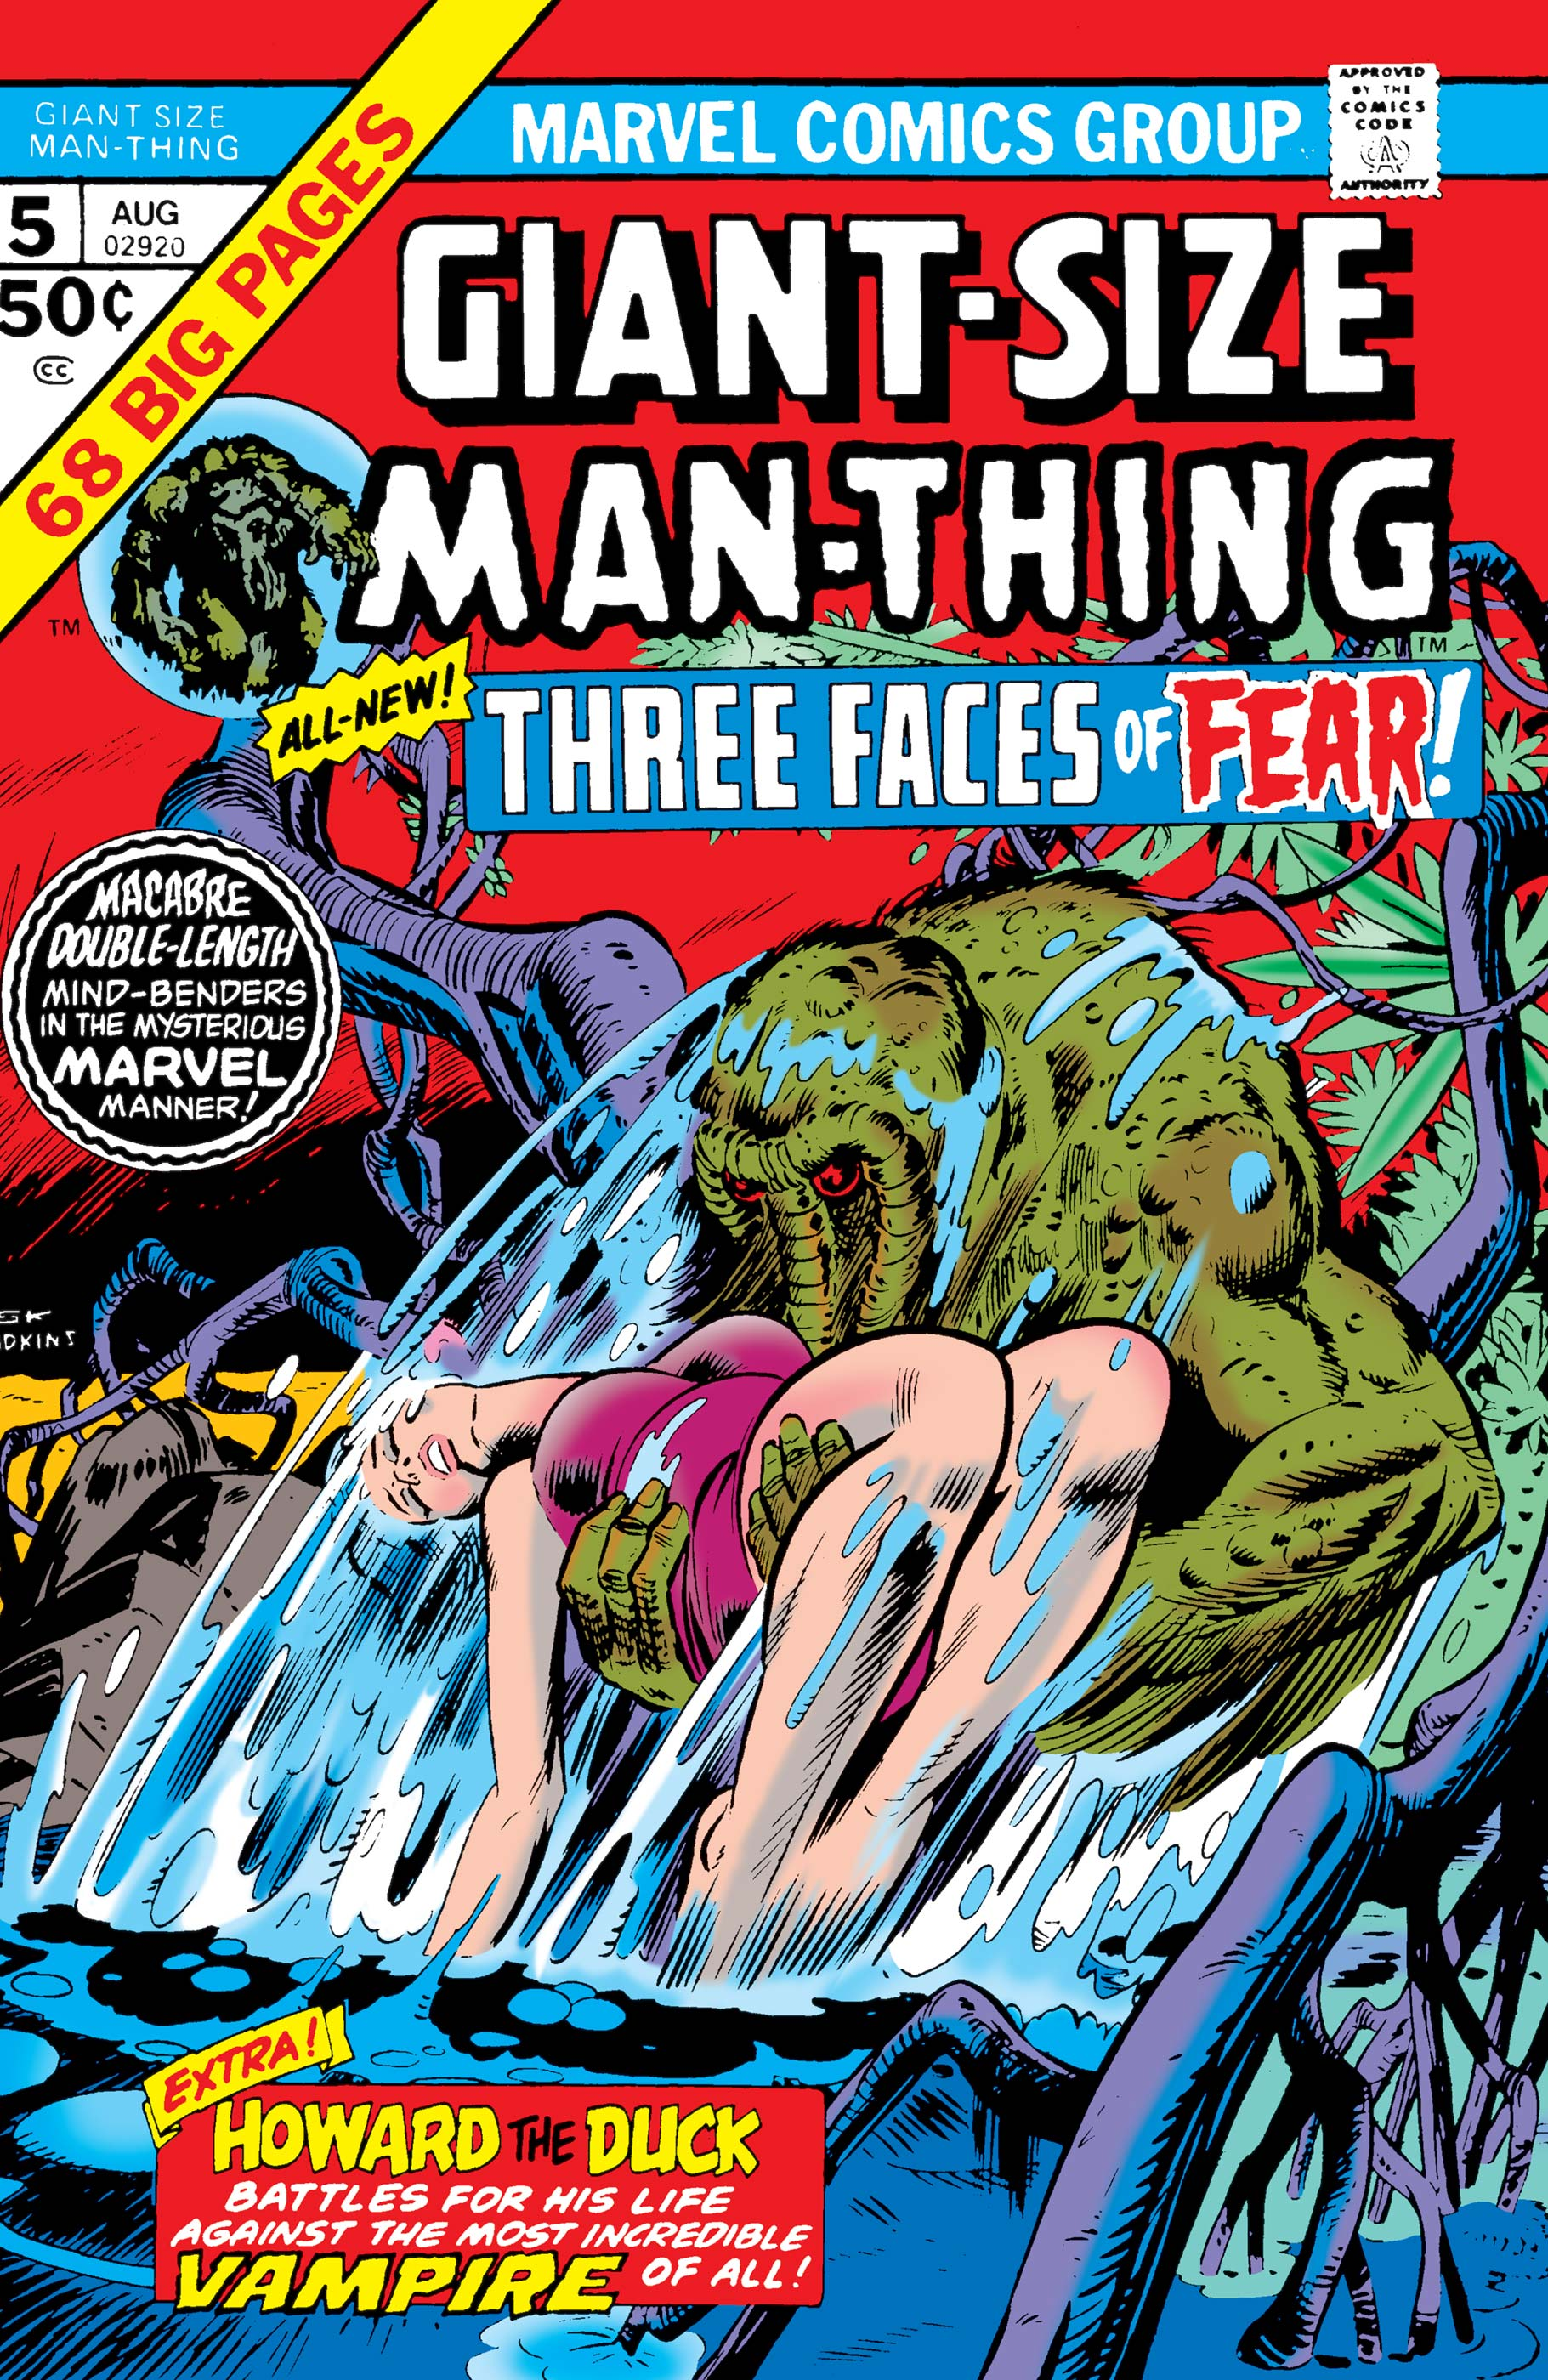 Giant-Size Man-Thing (1974) #5